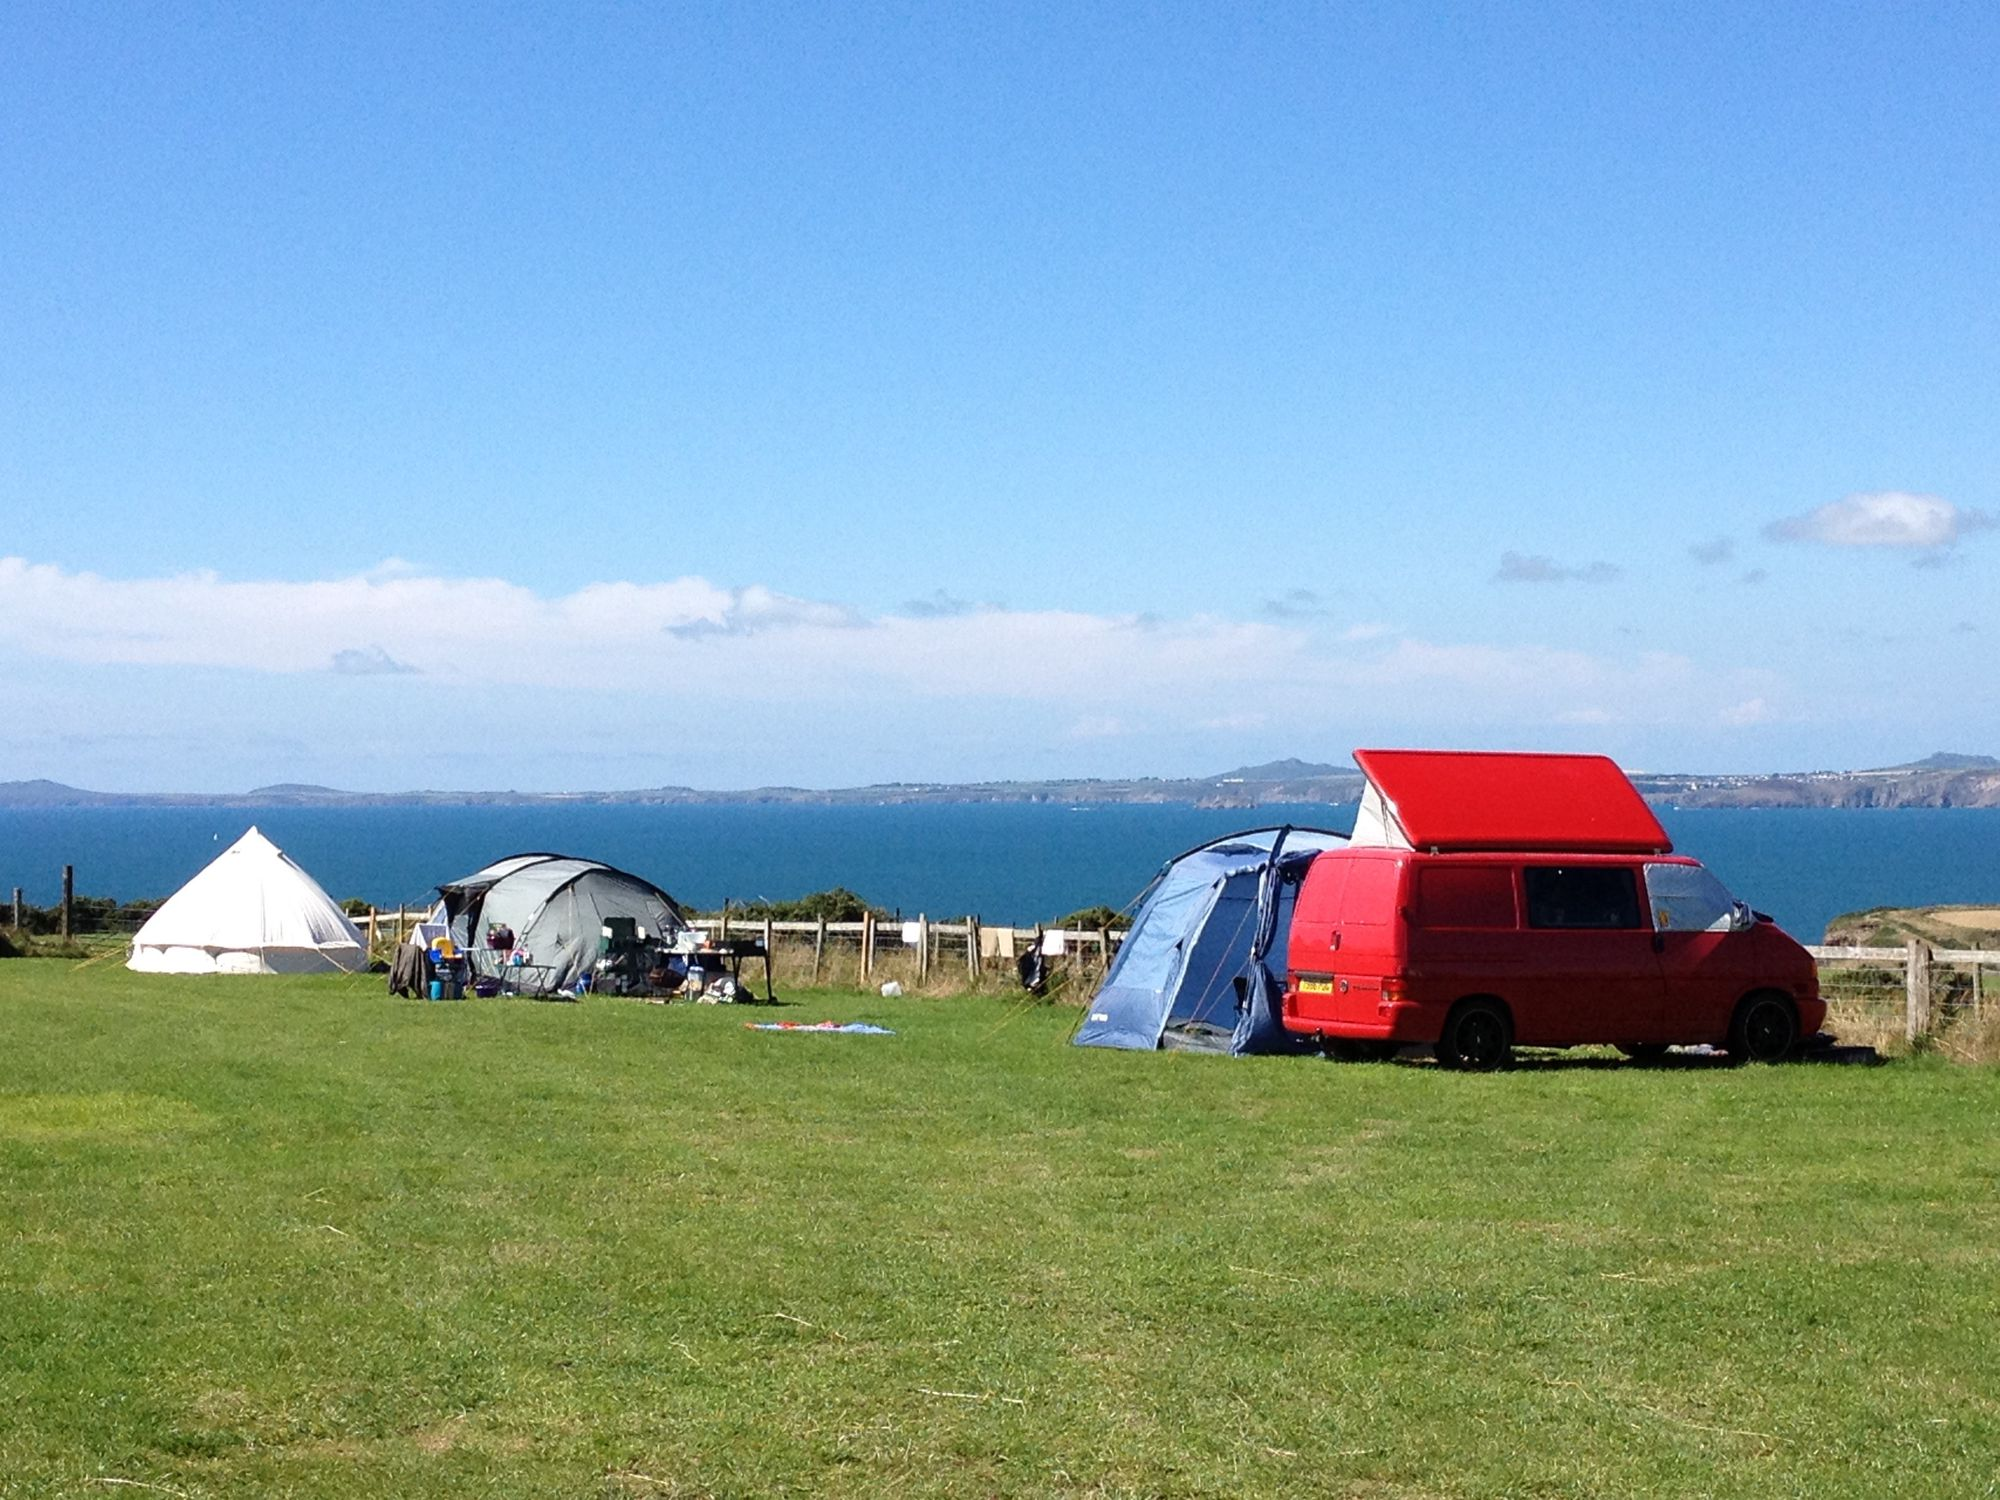 This traditional, 29 acre, cliff-top dairy farm at Druidston is a breathtaking, back-to-basics site that makes the ideal camp for those exploring the unspoilt Pembrokeshire coast.